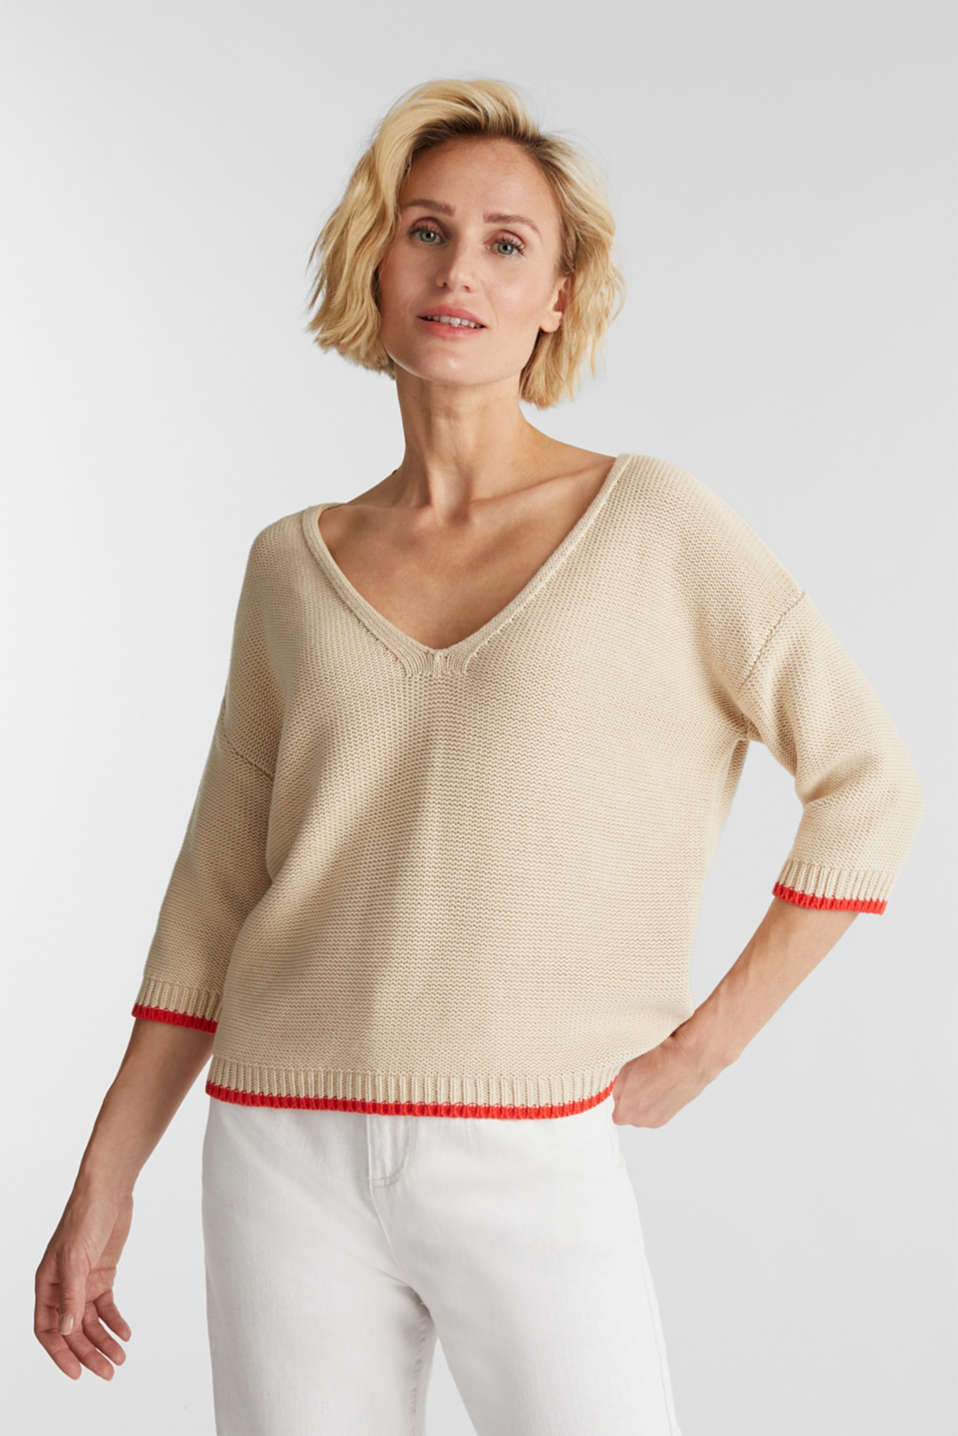 Esprit - Jumper with a V-neck, 100% cotton